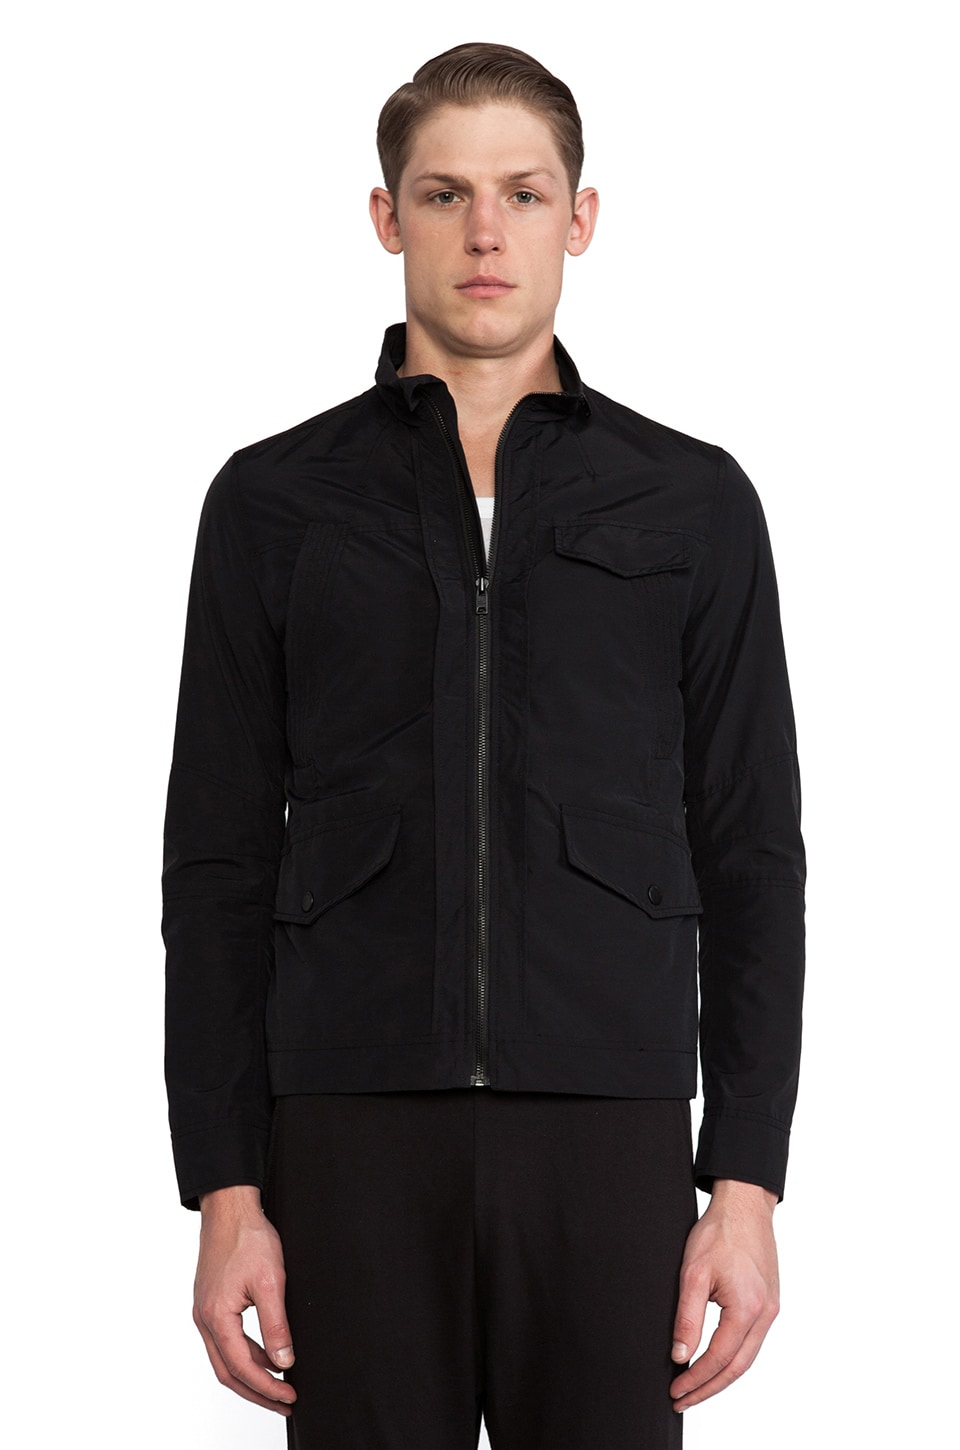 Kai-aakmann Jacket in Black